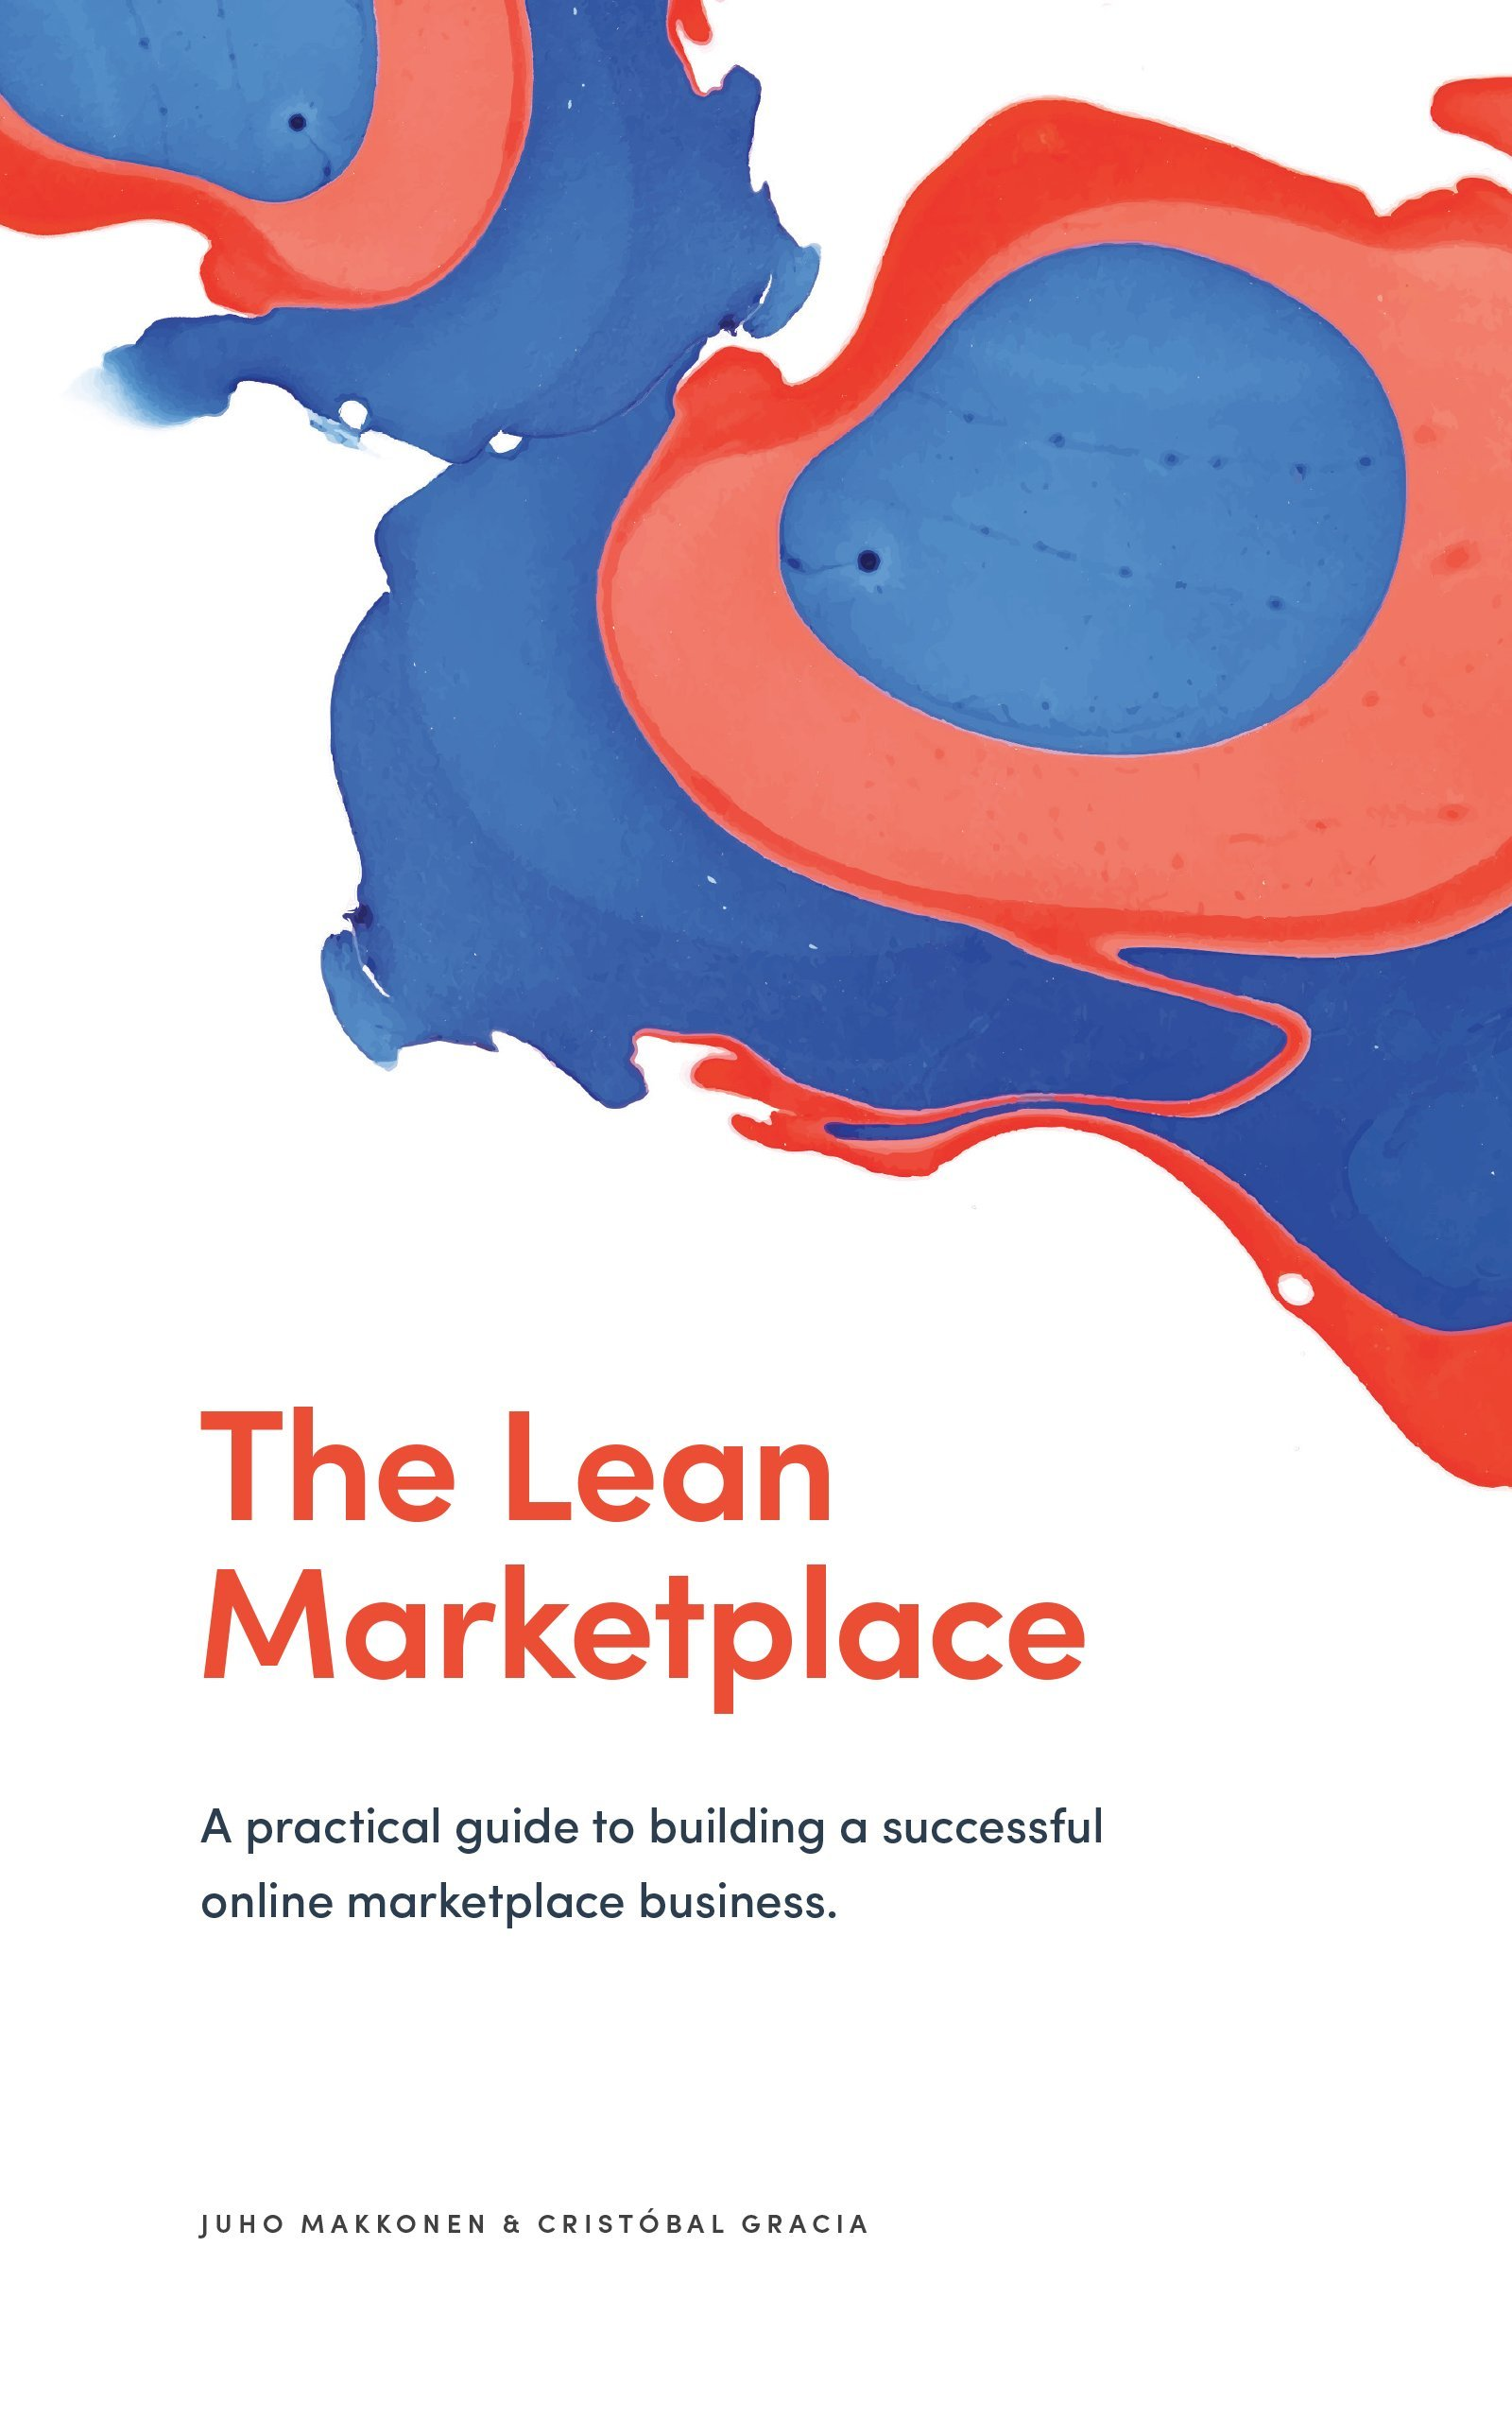 Image OfThe Lean Marketplace: A Practical Guide To Building A Successful Online Marketplace Business